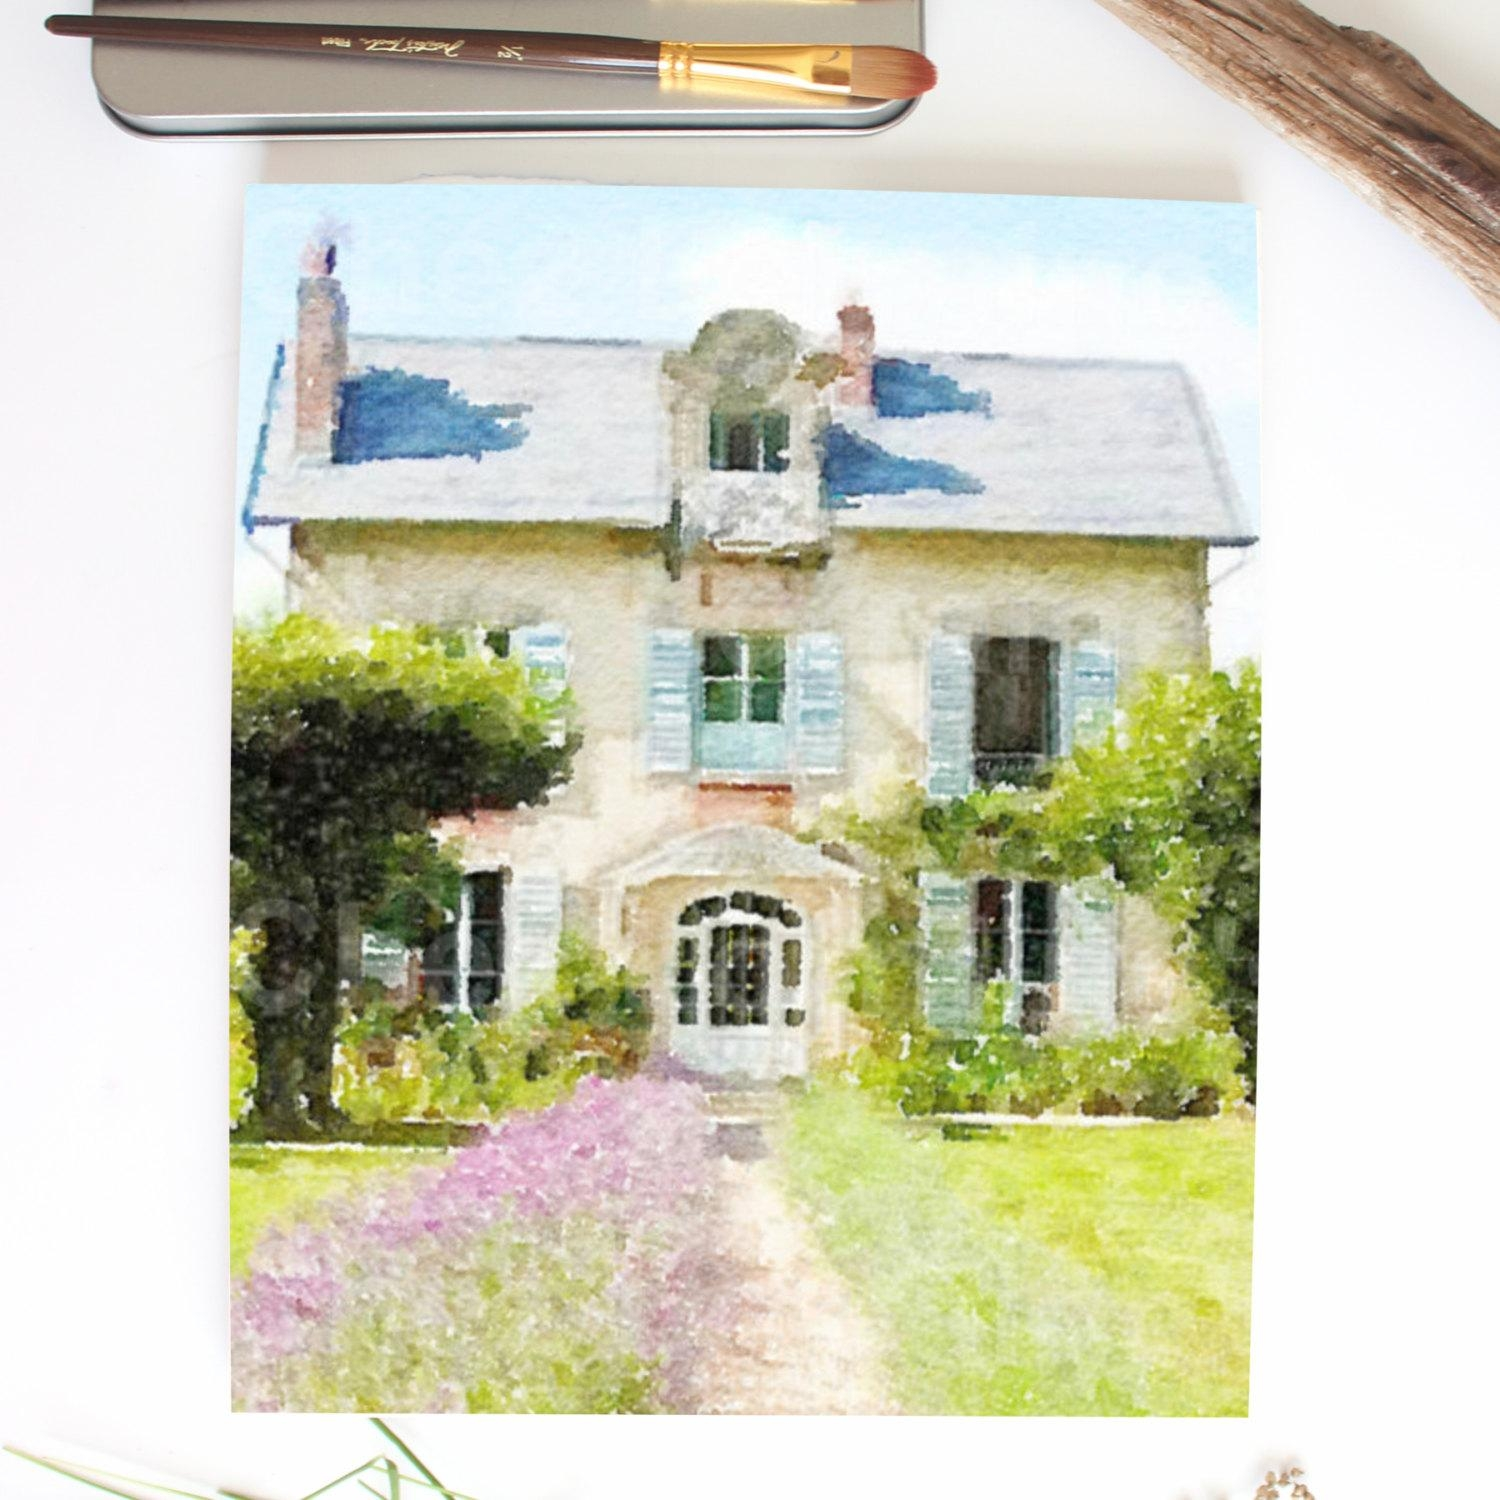 French Country Cottage In Provence: Lavender Floral Art Inside French Country Wall Art (Image 8 of 20)